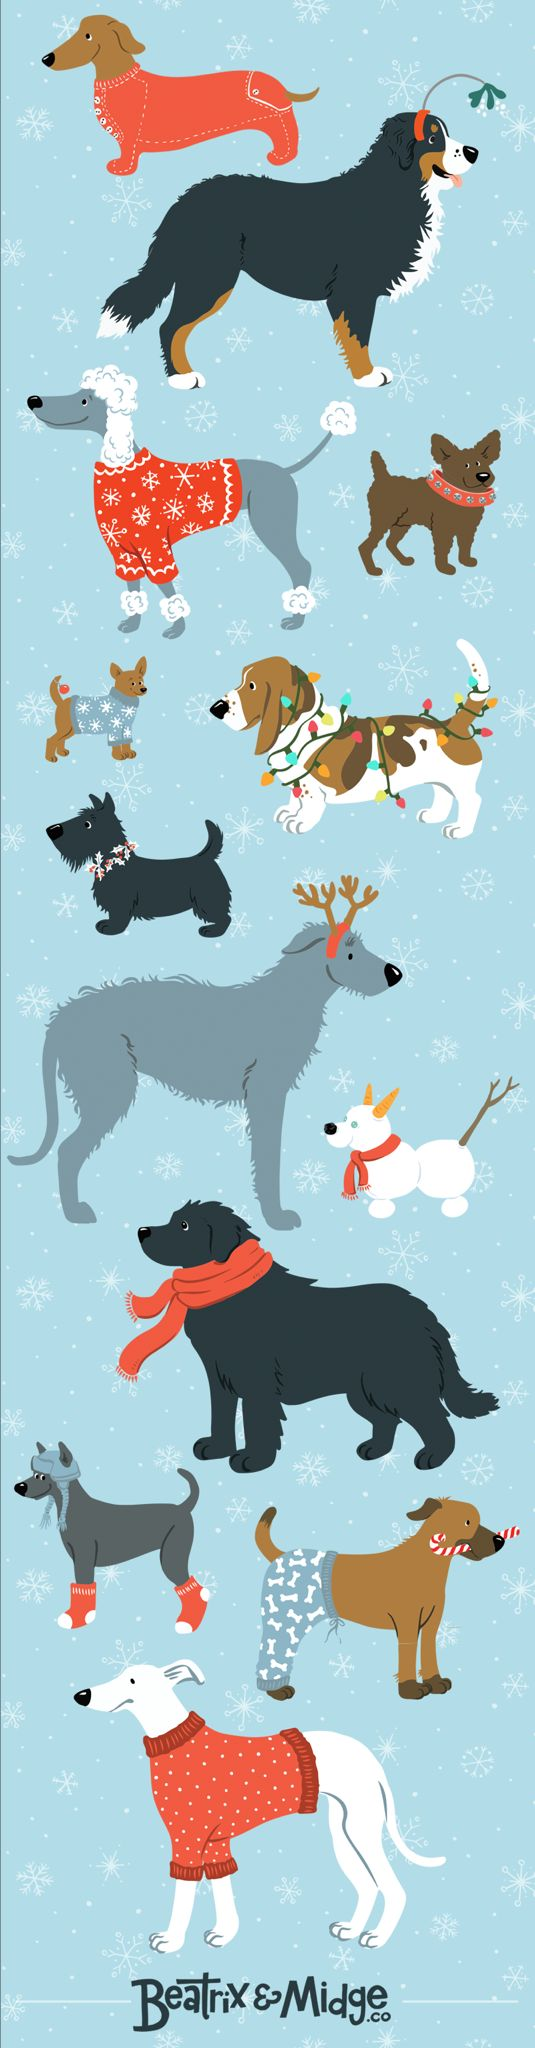 Beatrix and Midge Co. Holidogs Limited Edition Print